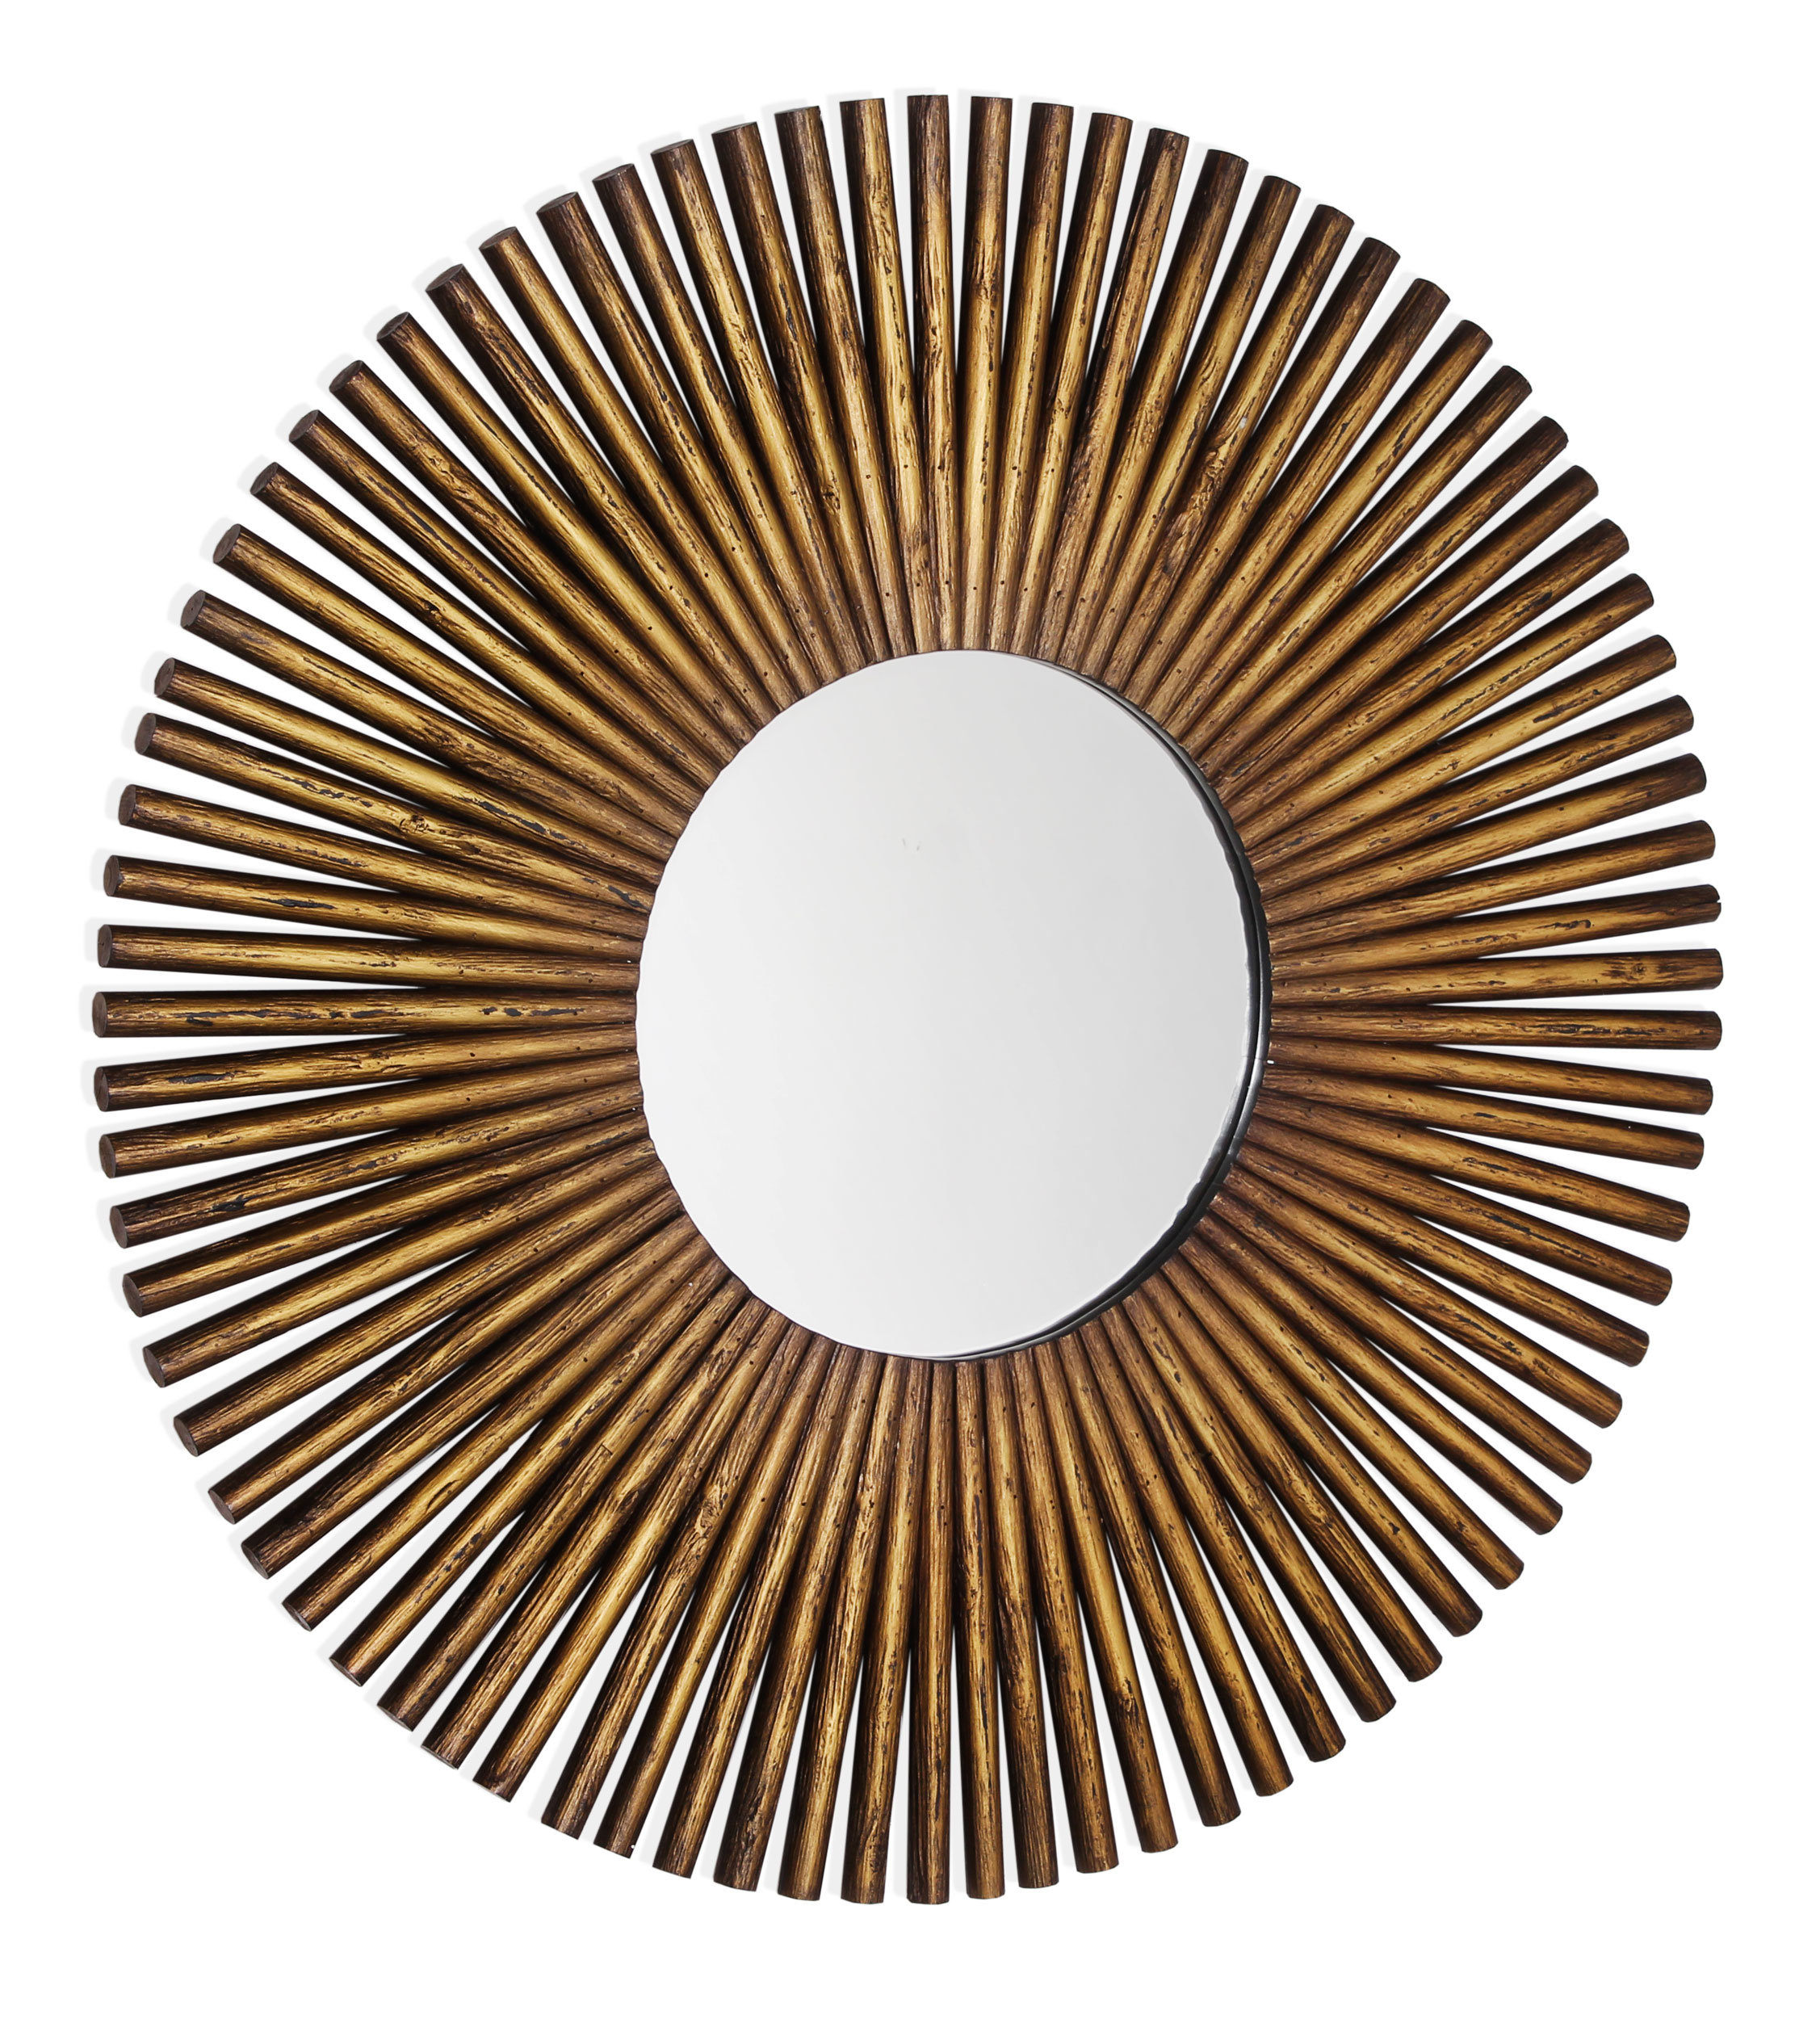 Orwin Wall Mirror Regarding Dandre Wall Mirrors (Image 15 of 20)